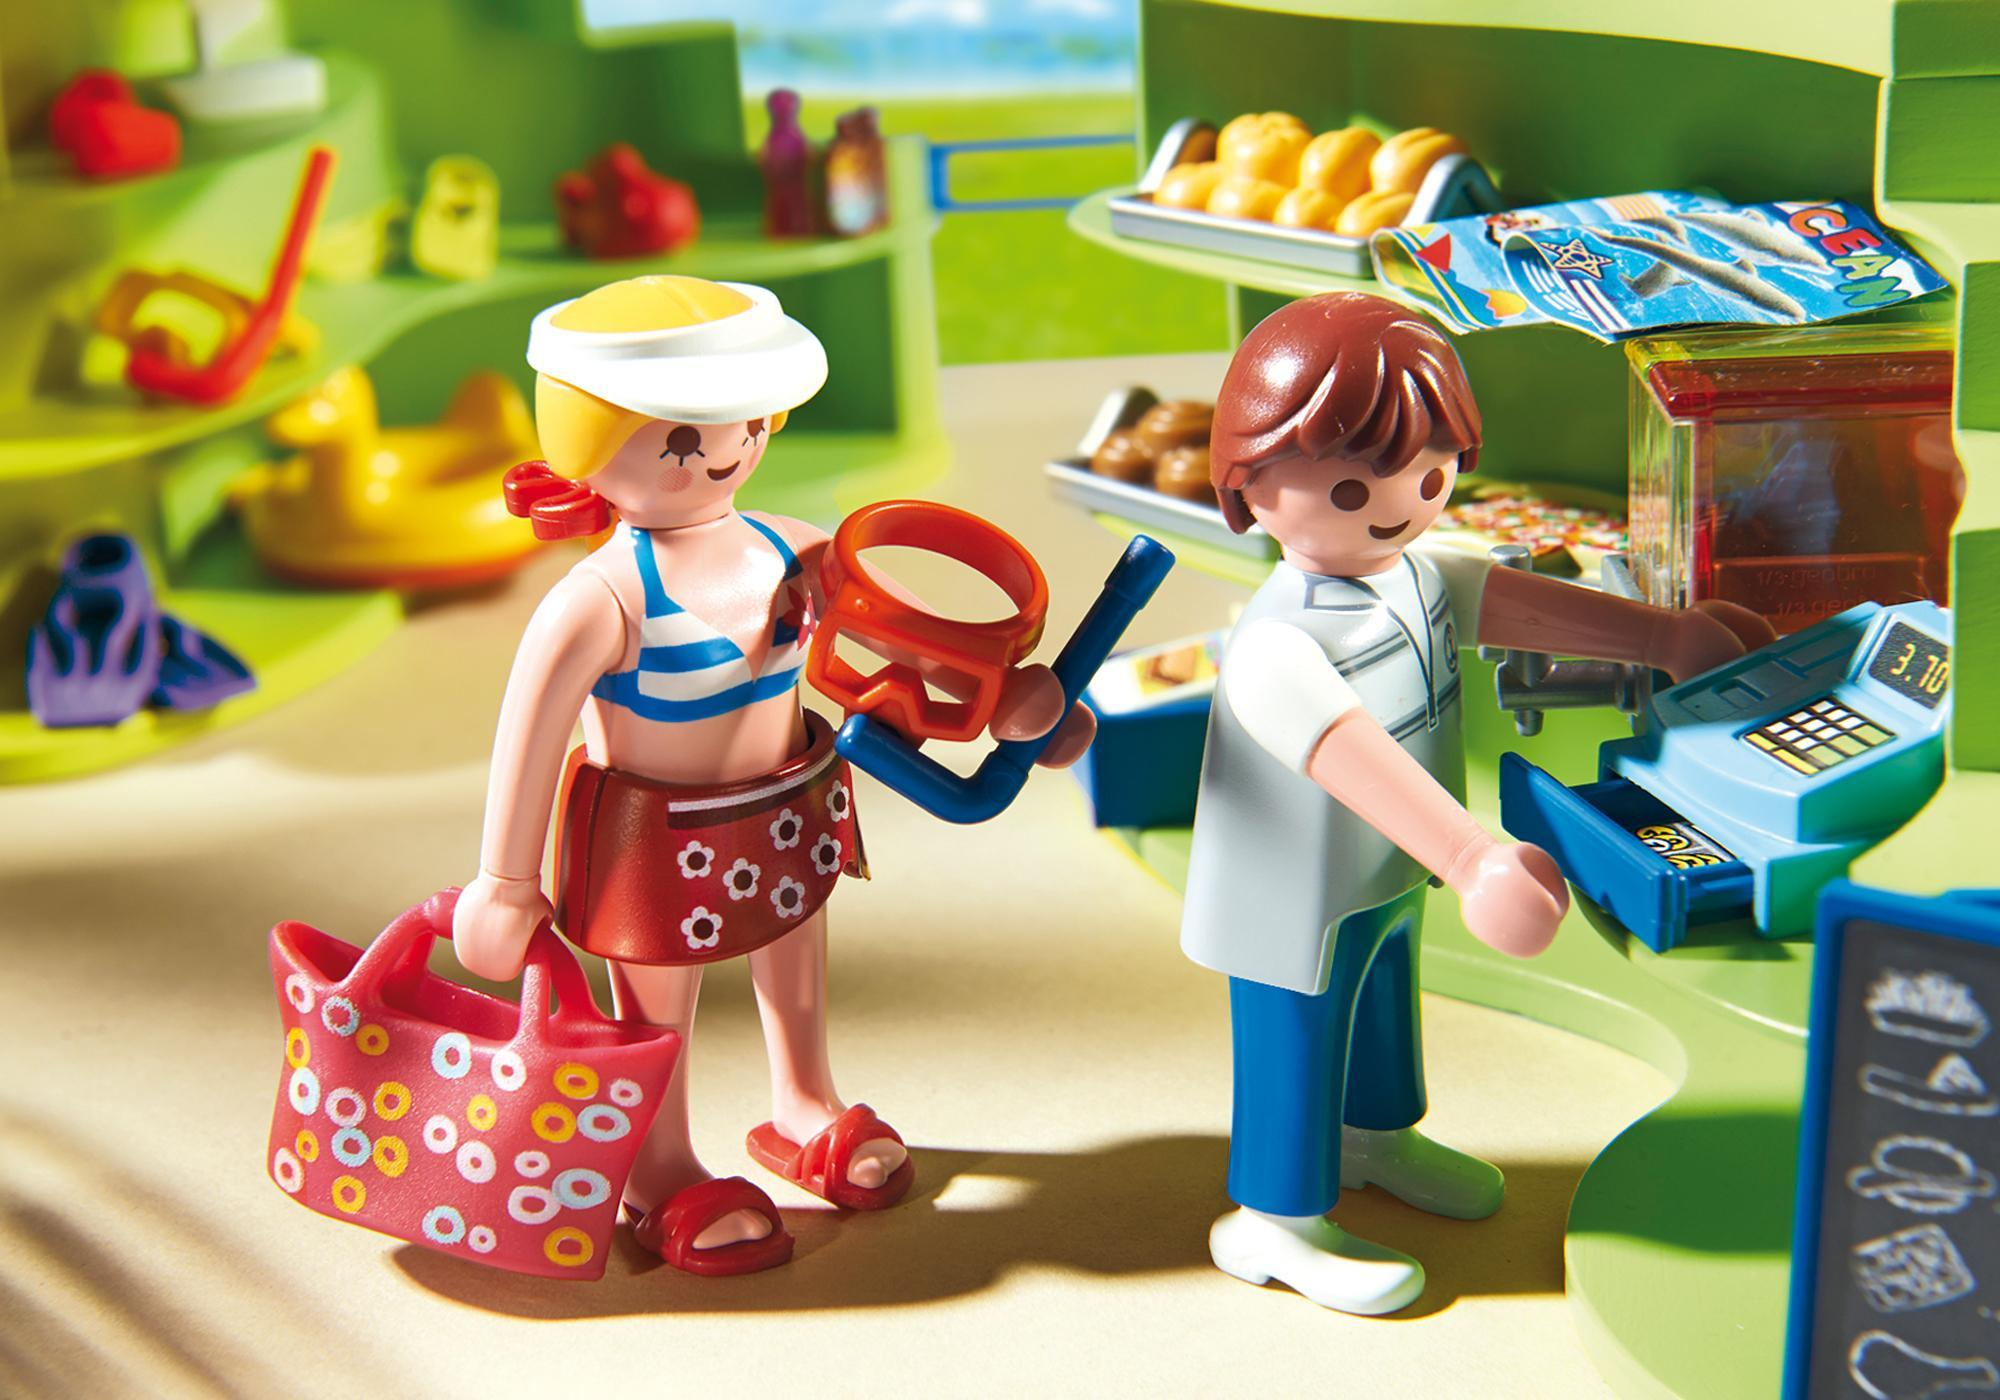 http://media.playmobil.com/i/playmobil/6672_product_extra1